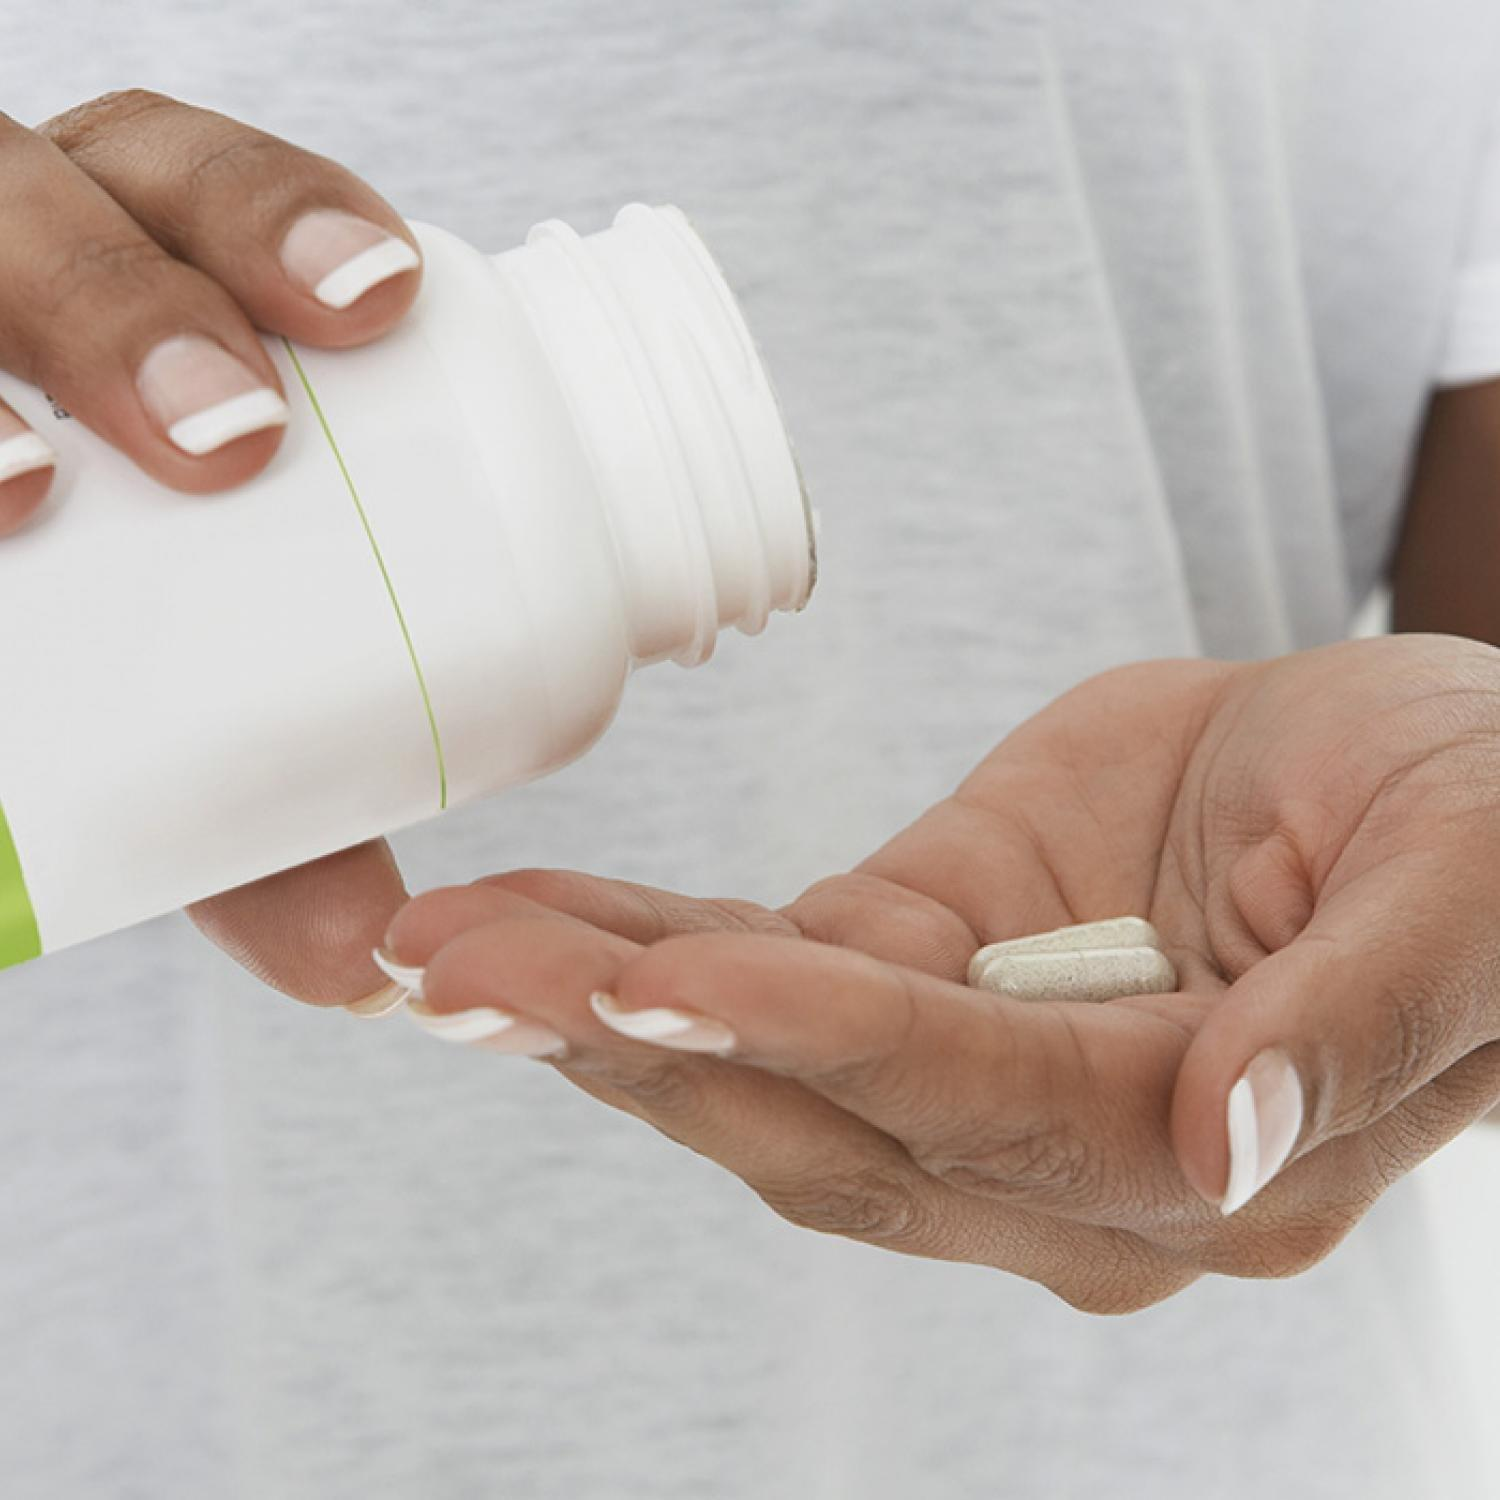 Can Metformin Help Women With Pcos?